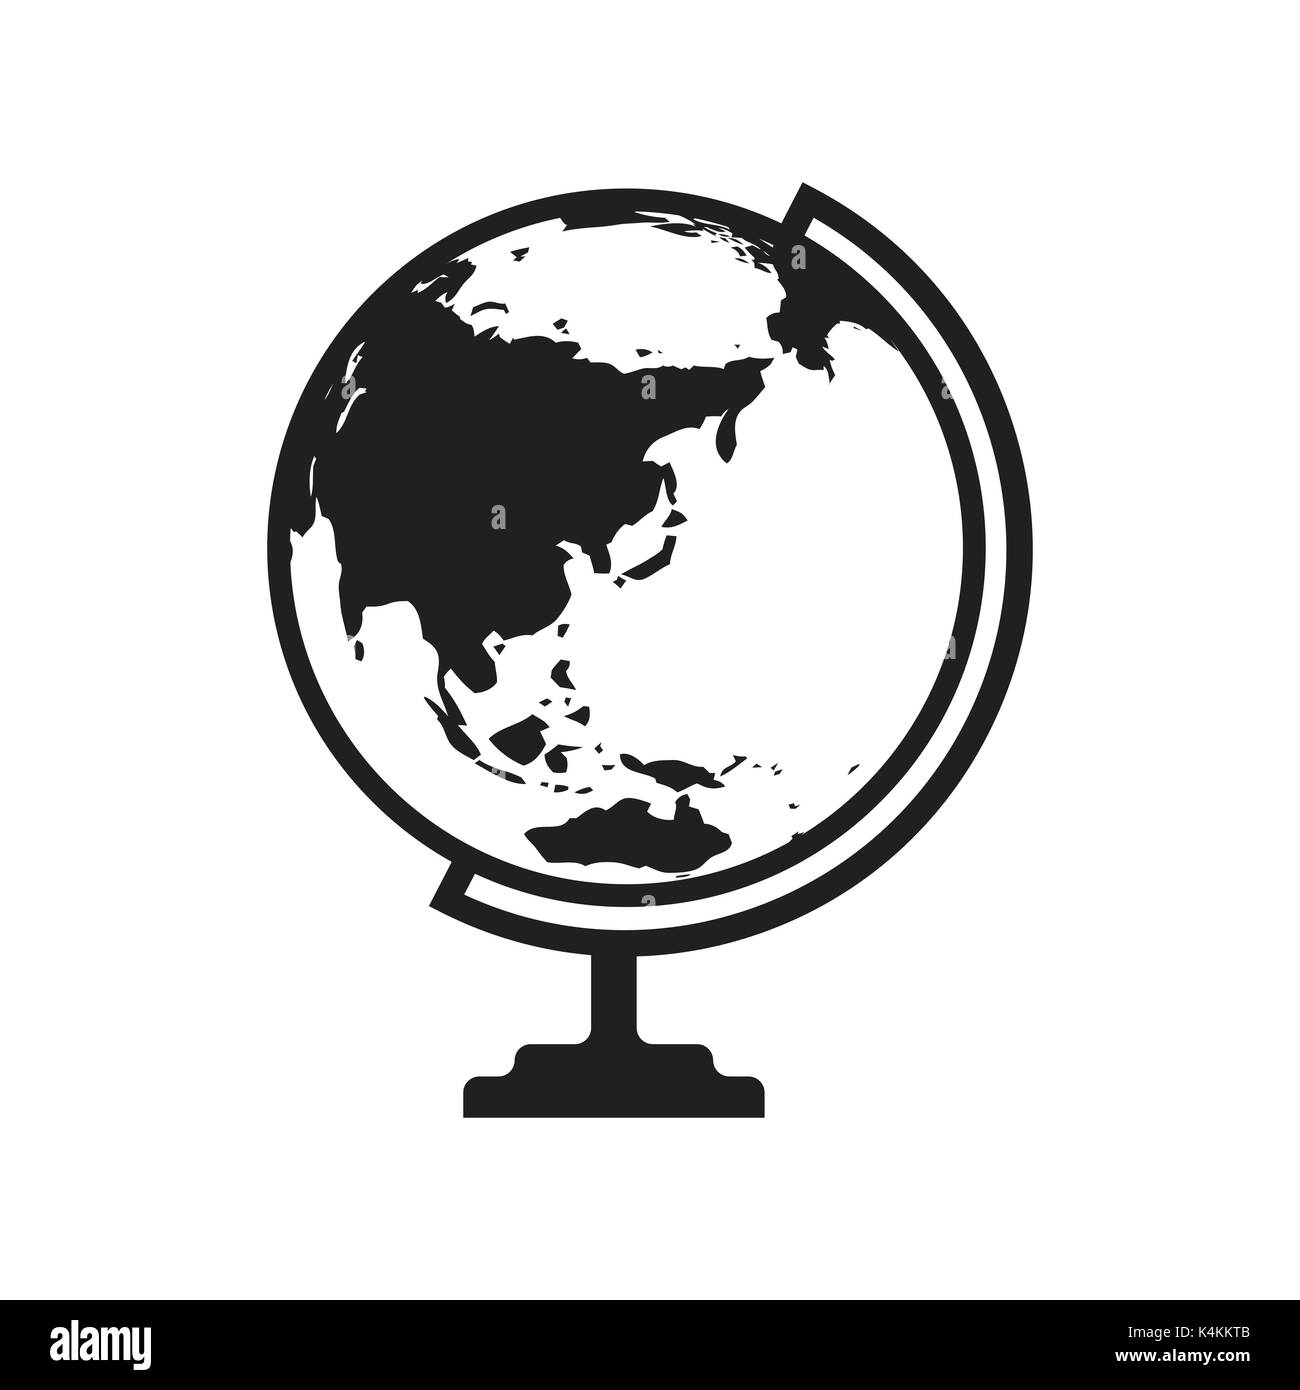 Globe icon vector with Asia and Australia map. Flat icon isolated on the white background. Vector illustration. - Stock Image